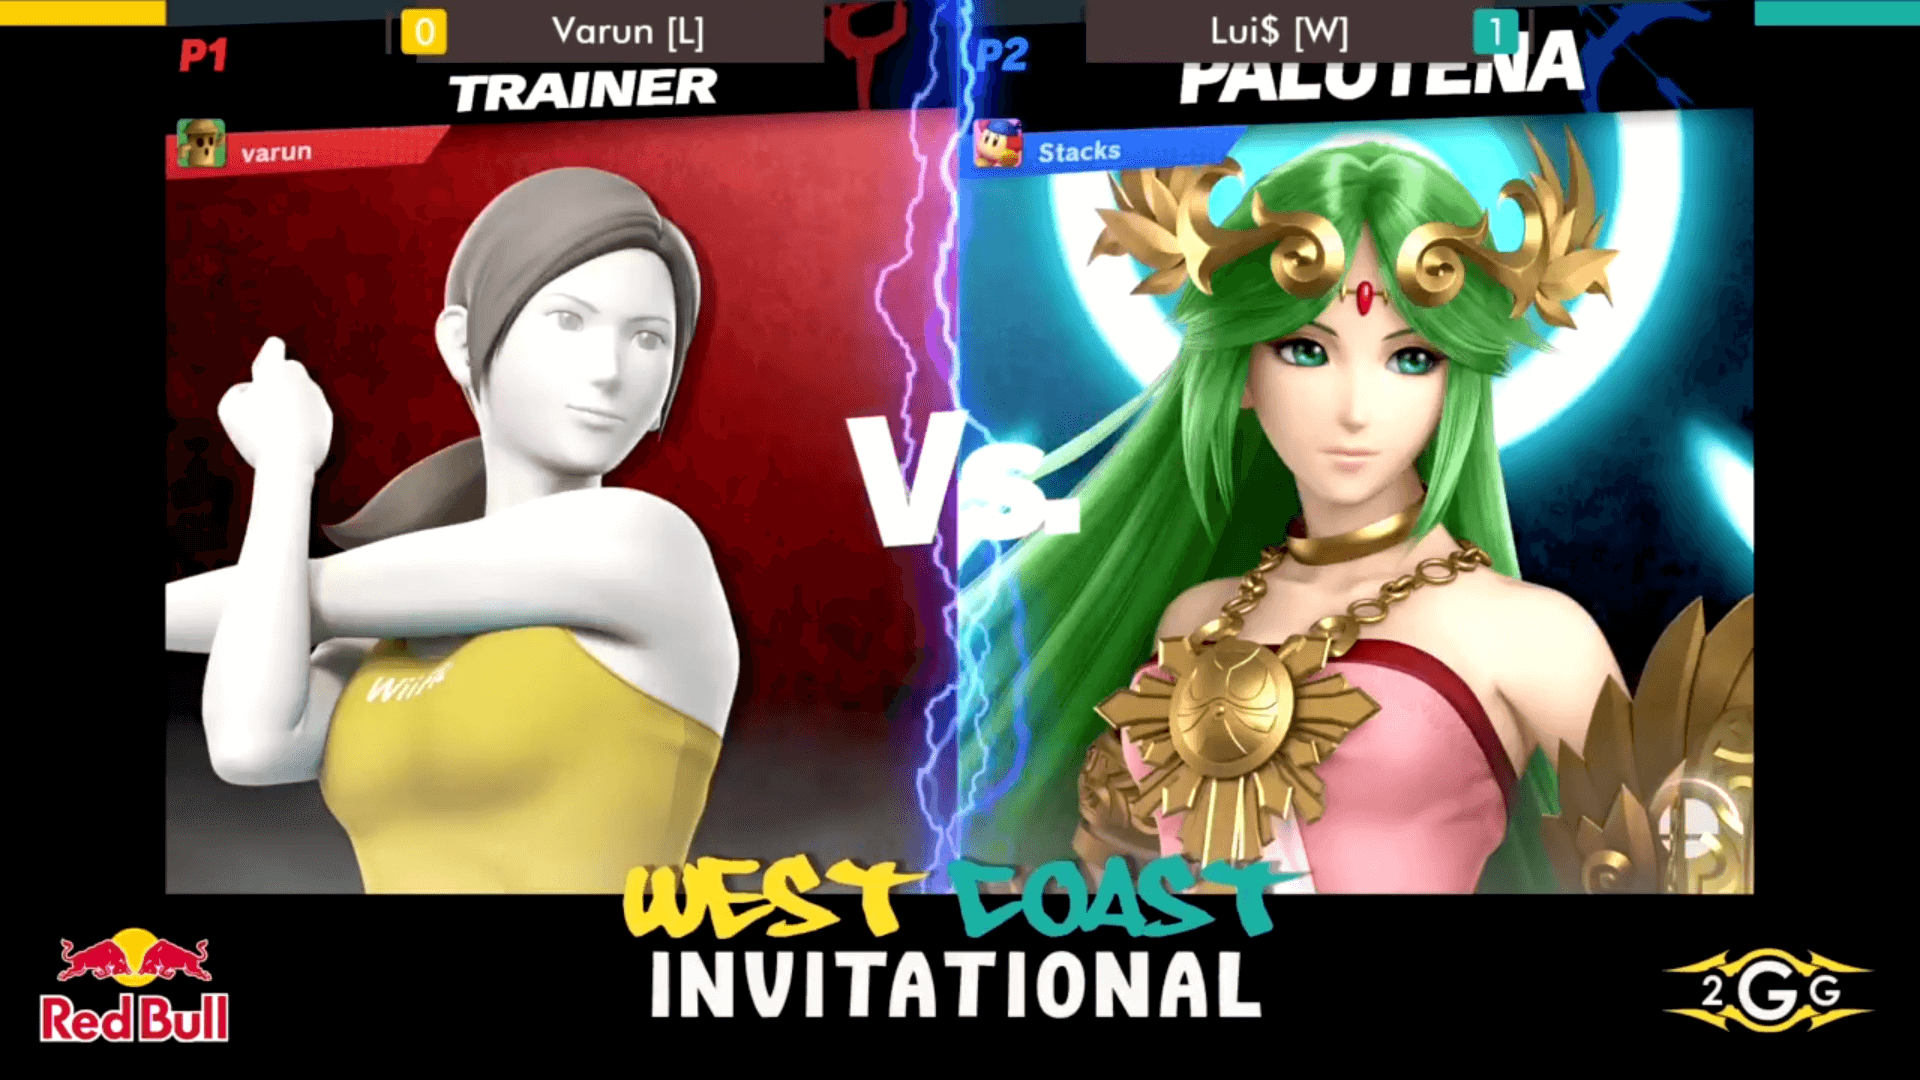 Lui$ is a Champion of SSBU 2GG West Coast Invitational